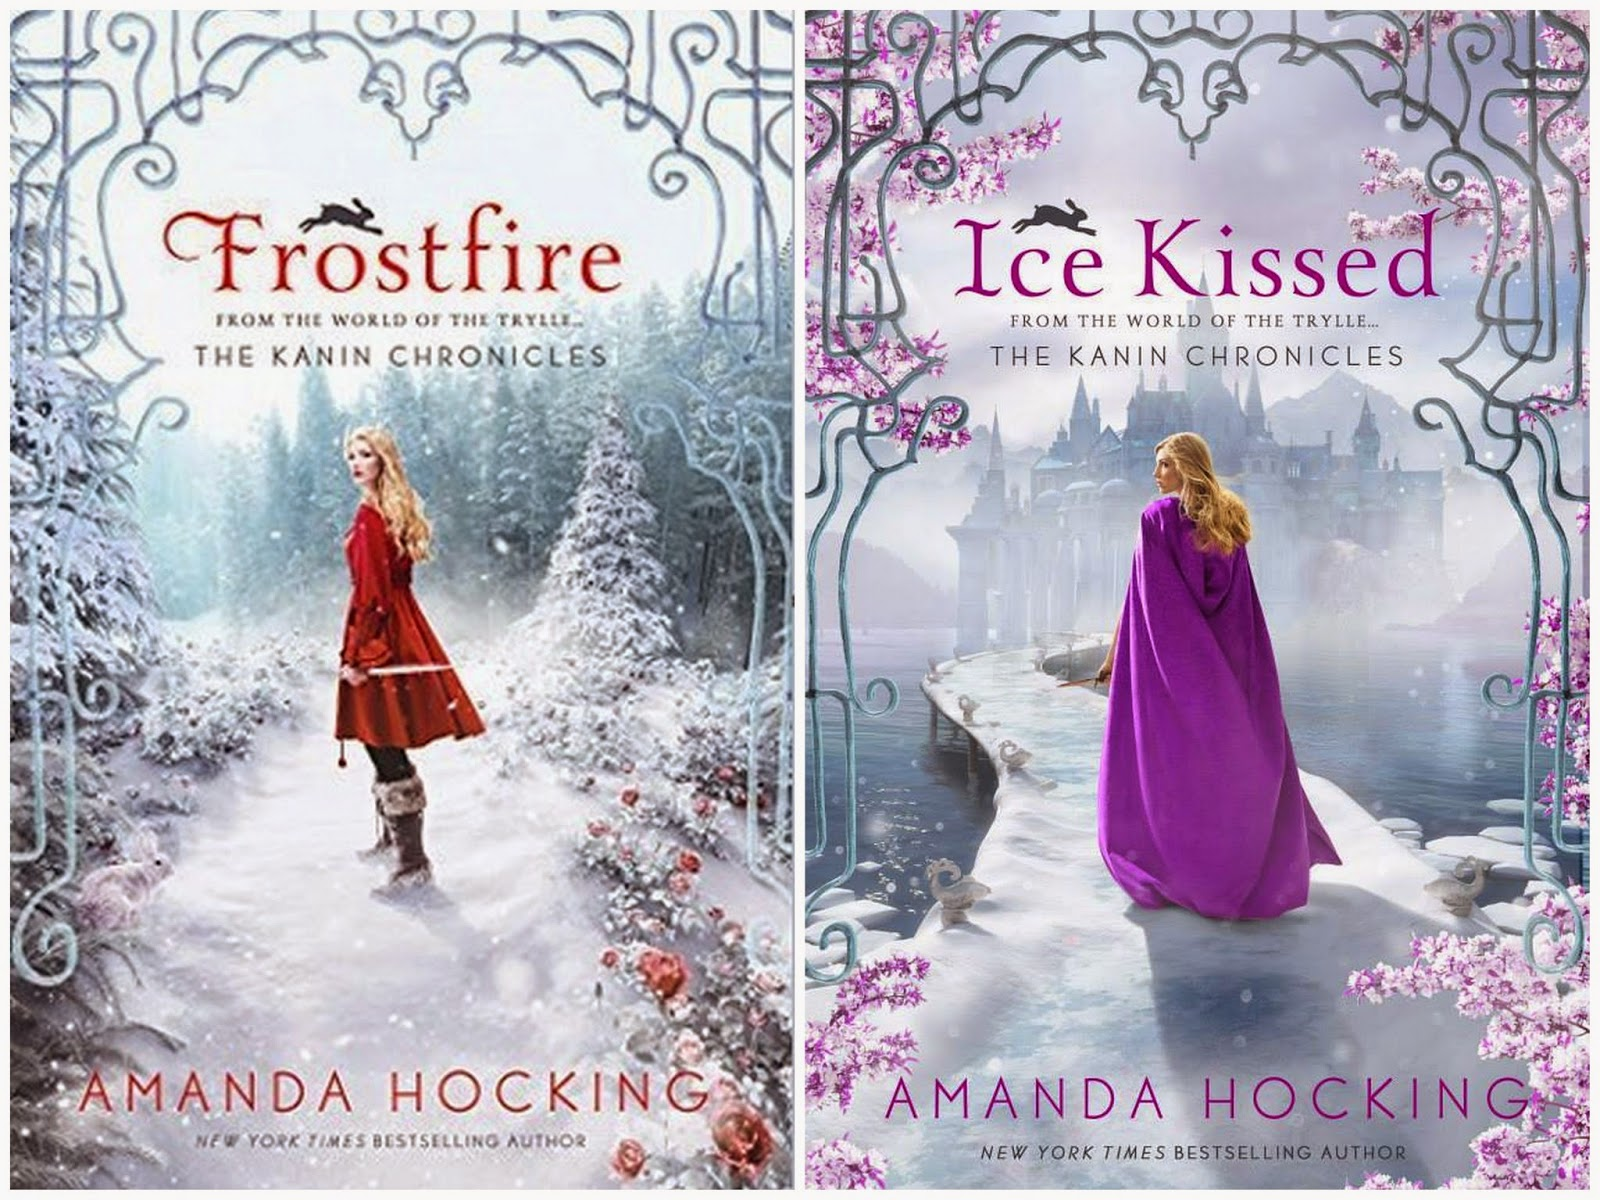 And ice kissed the kanin chronicles 1 and 2 by amanda hocking ya